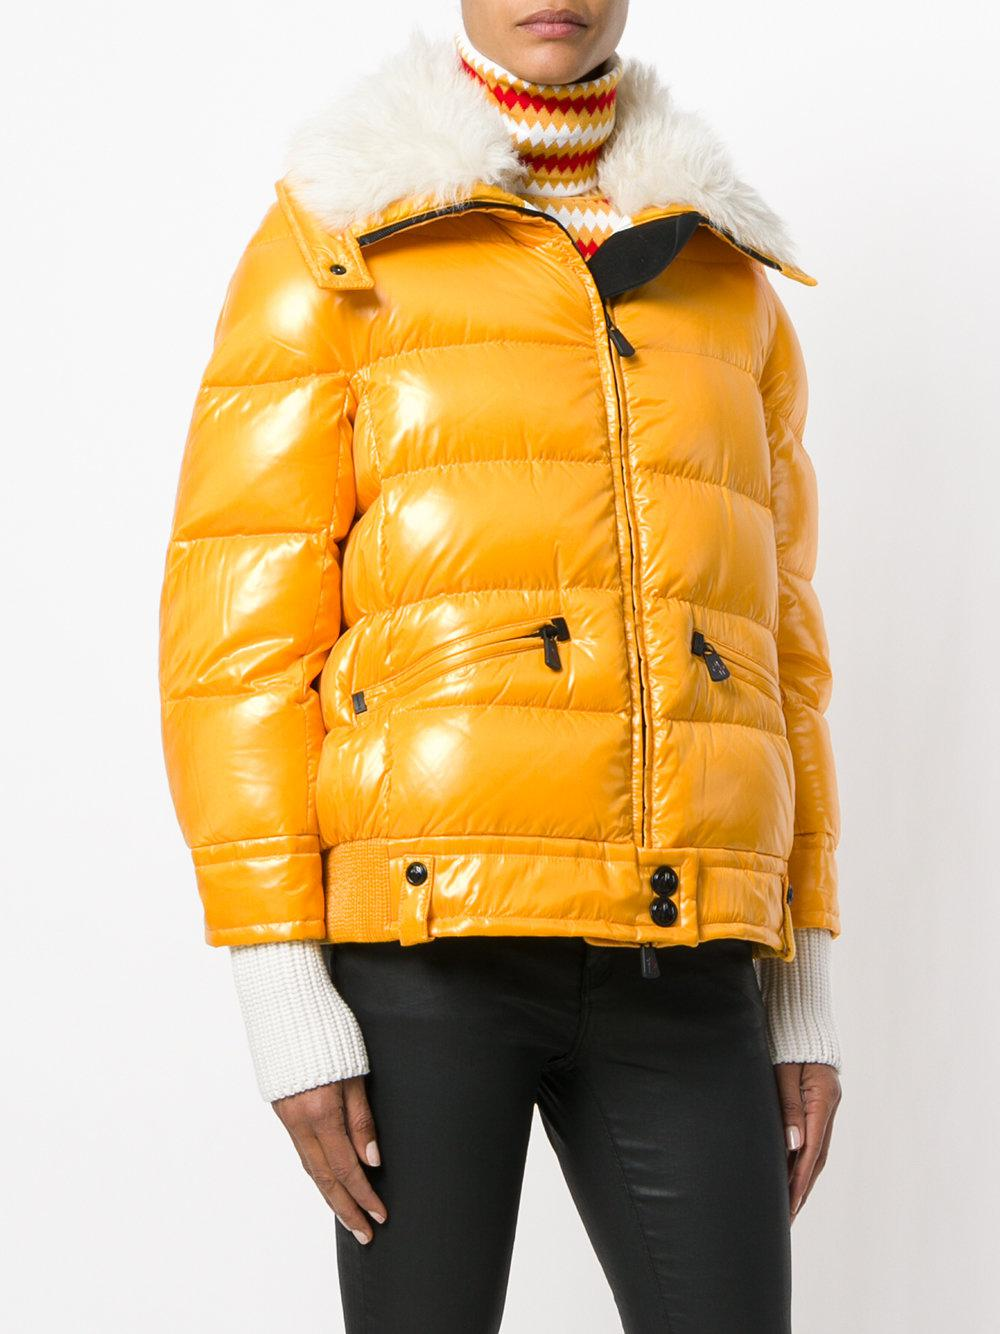 4dd4a48d9d5a Moncler Grenoble Lamb Fur Collar Puffer Jacket in Yellow - Lyst